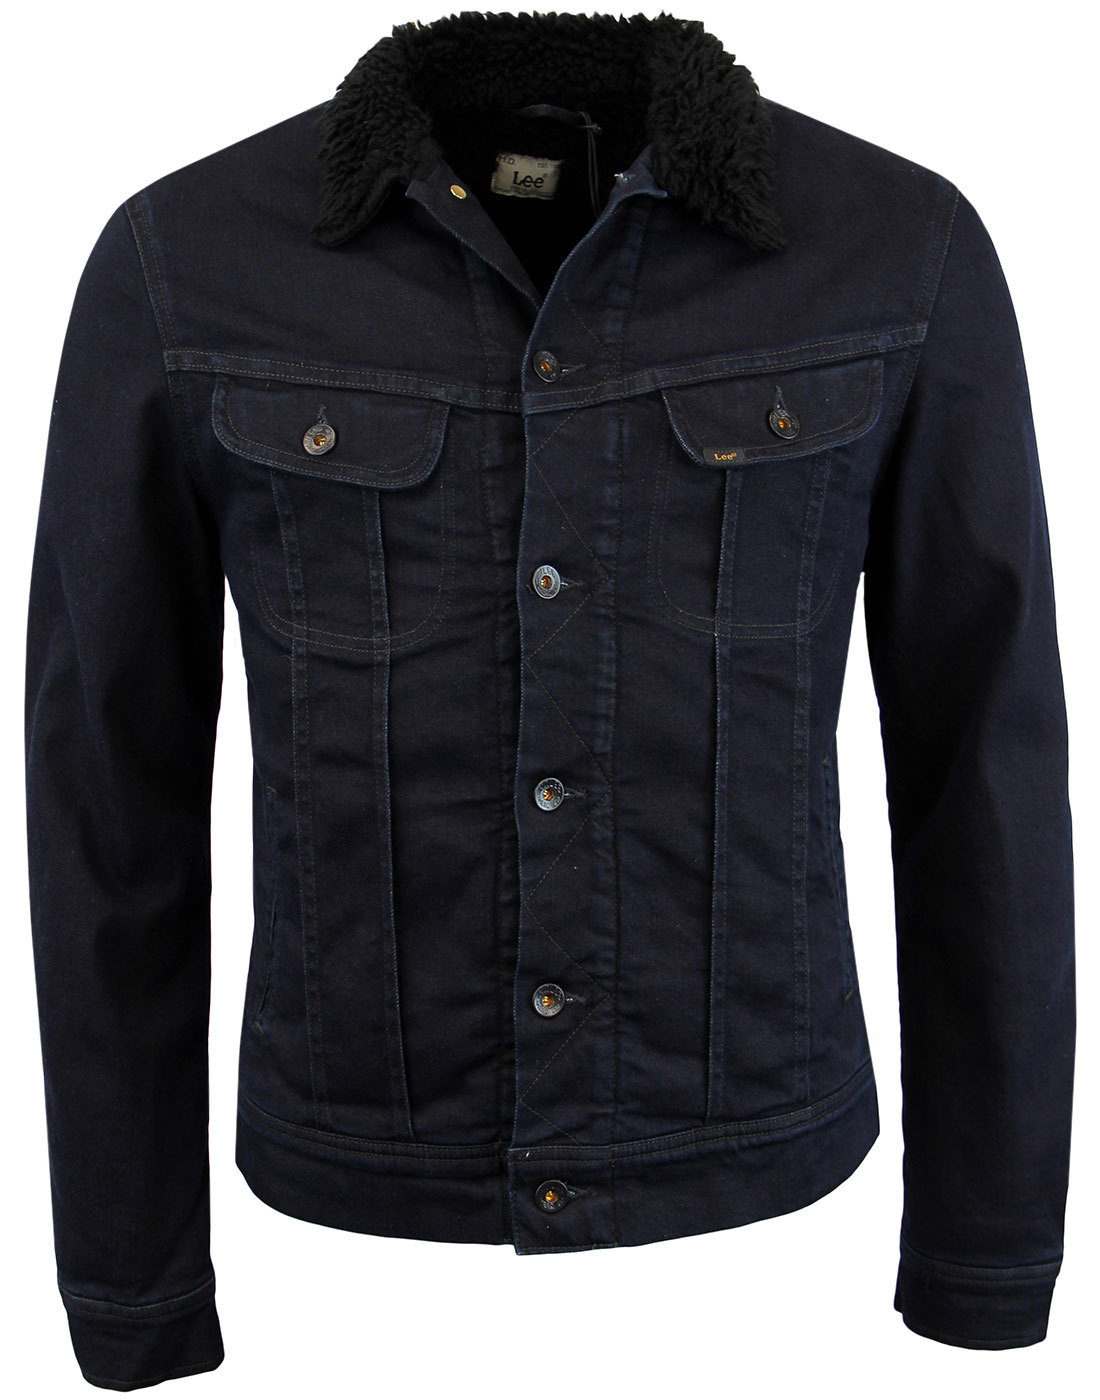 LEE Sherpa Rider Retro Mod Dark Prime Denim Jacket